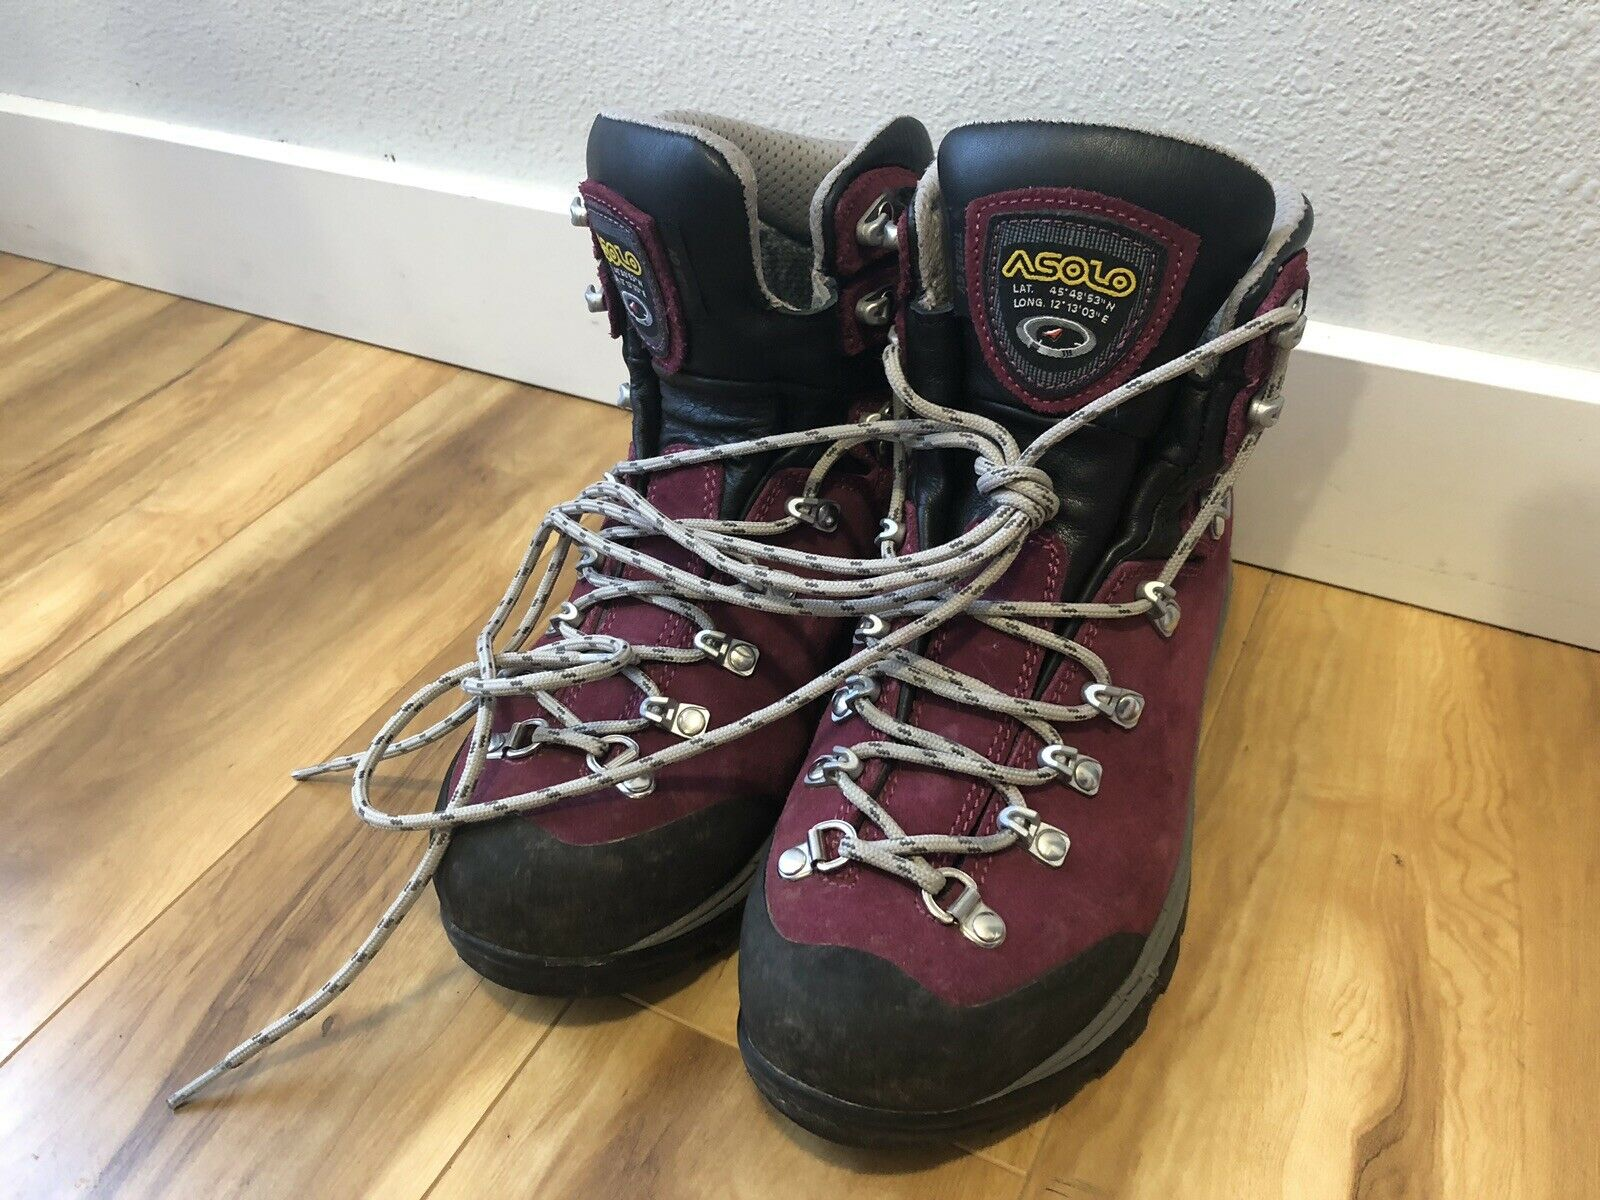 Asolo Tribe GV Hiking Boots - Women's Size 7 Goretex Waterproof